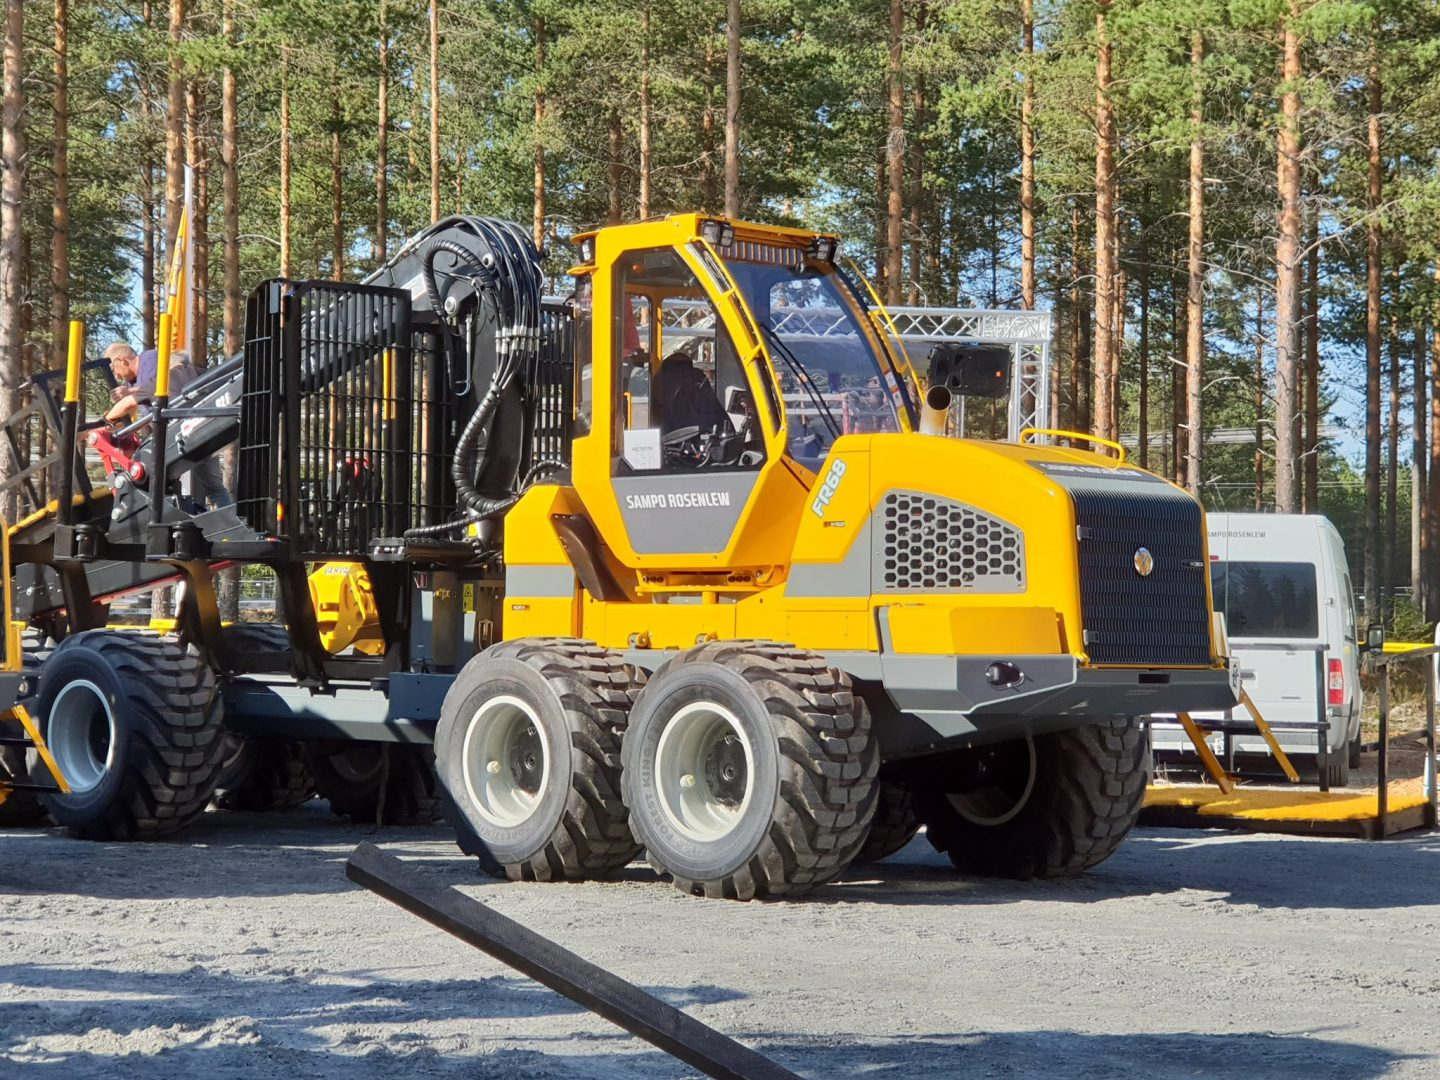 Sampo is serious in the forest launching 3 brand new machines